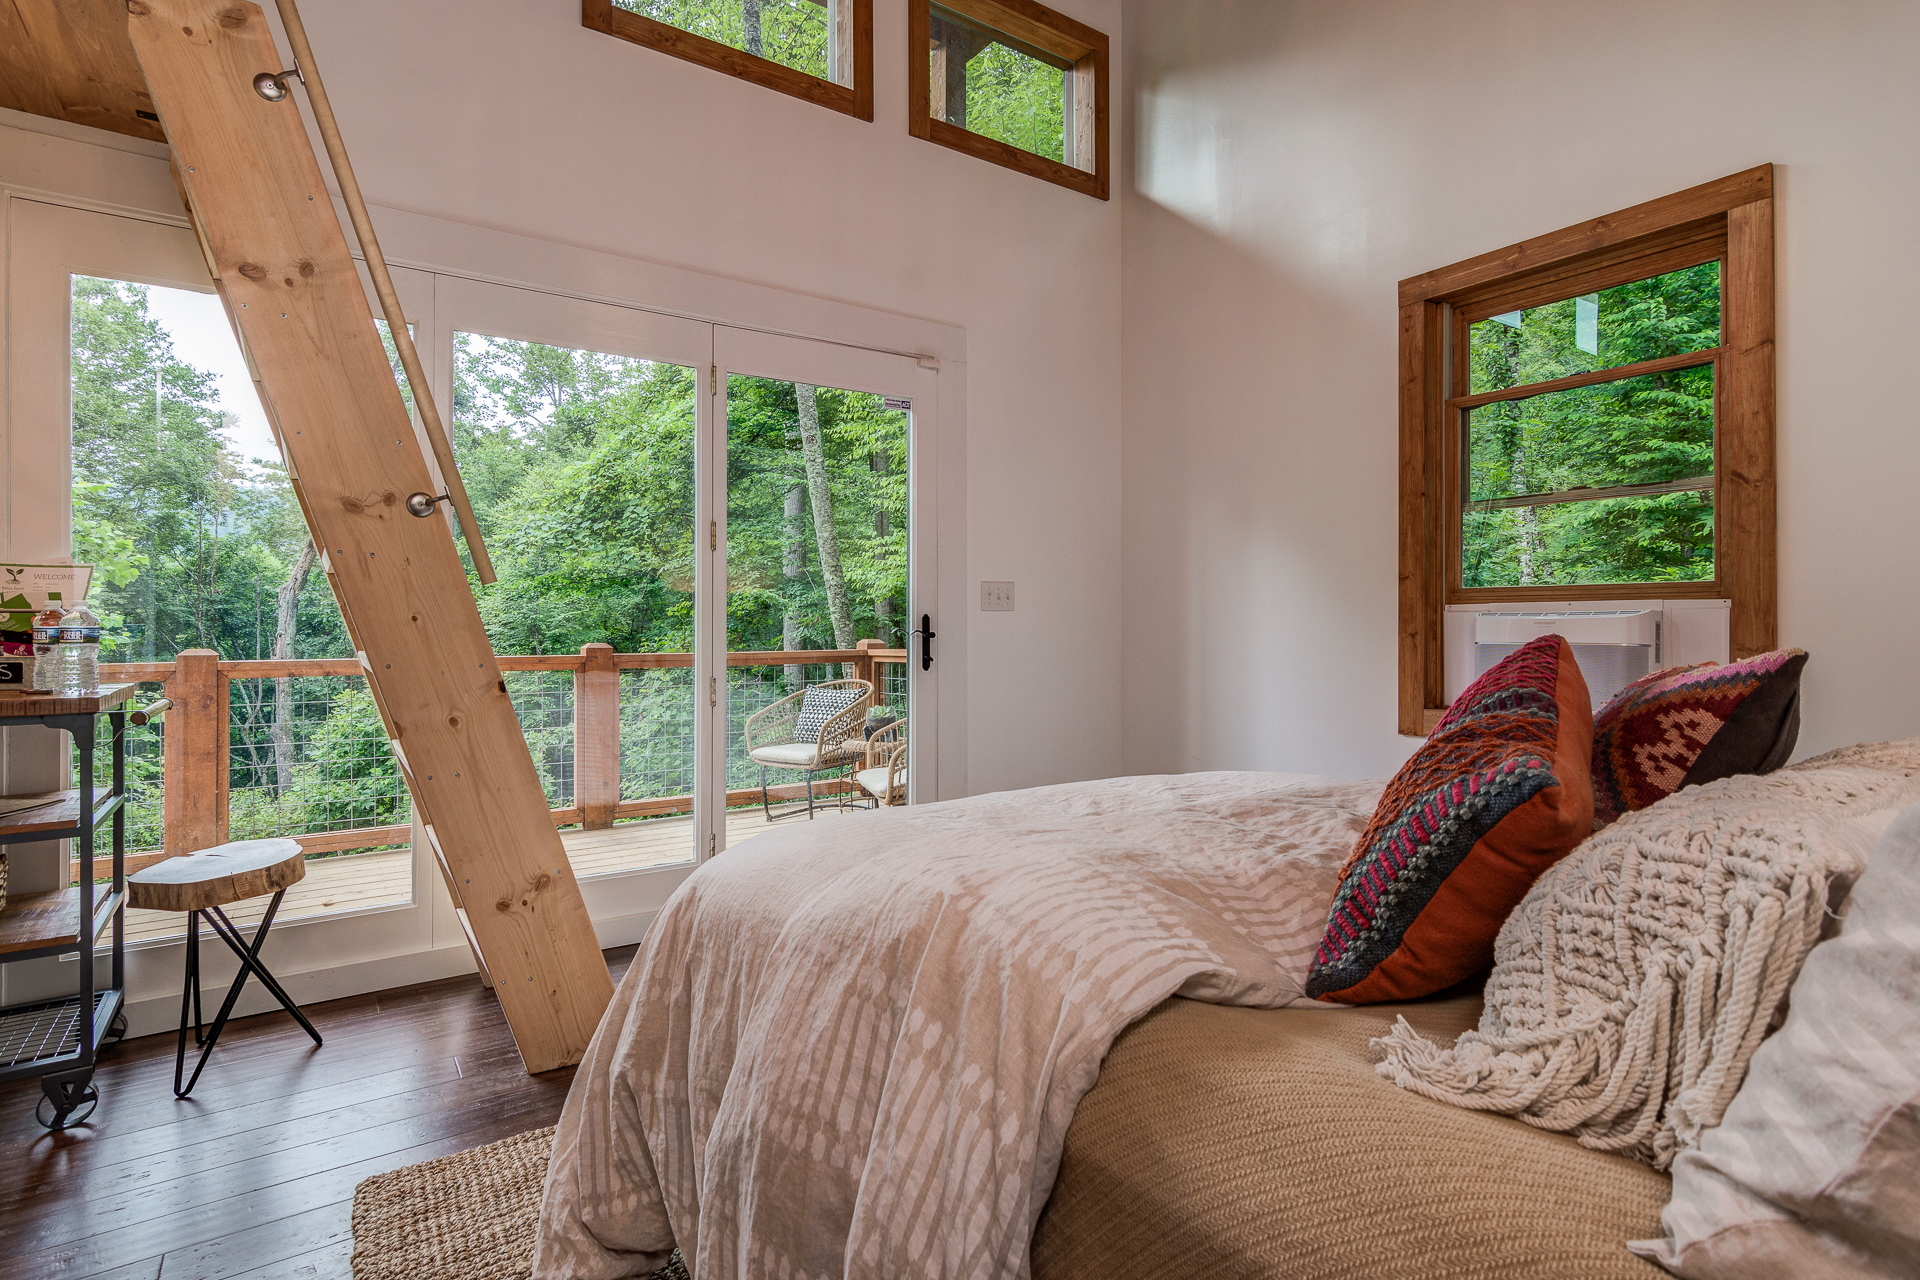 Beautiful modern cabin recovery wellness retreat asheville nc